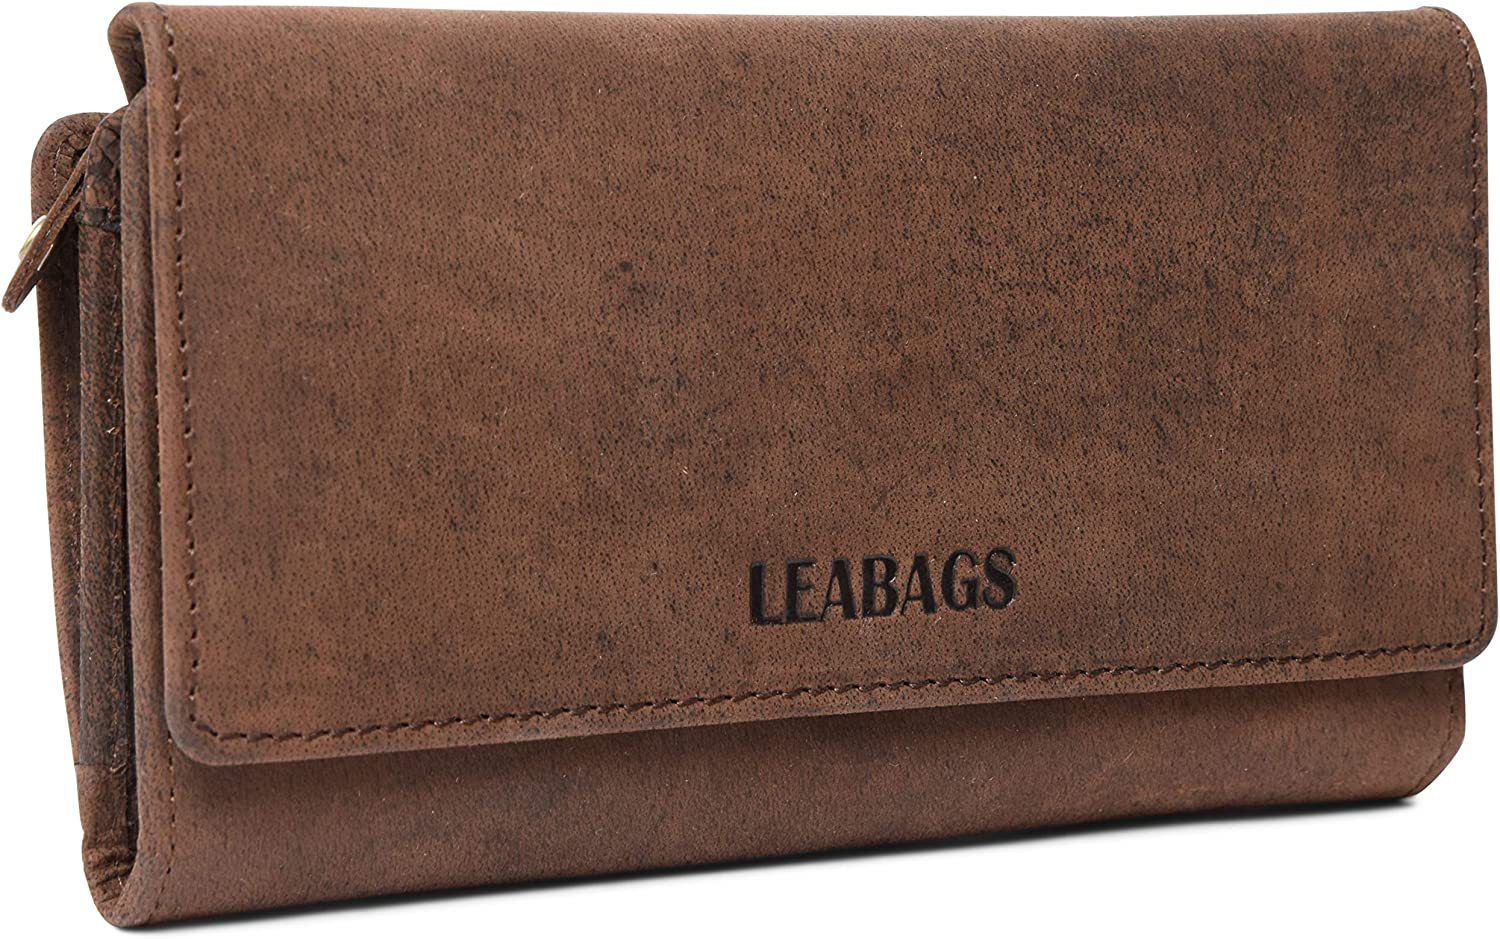 LEABAGS Cleveland Genuine Buffalo Leather Womens Wallet  Muskat